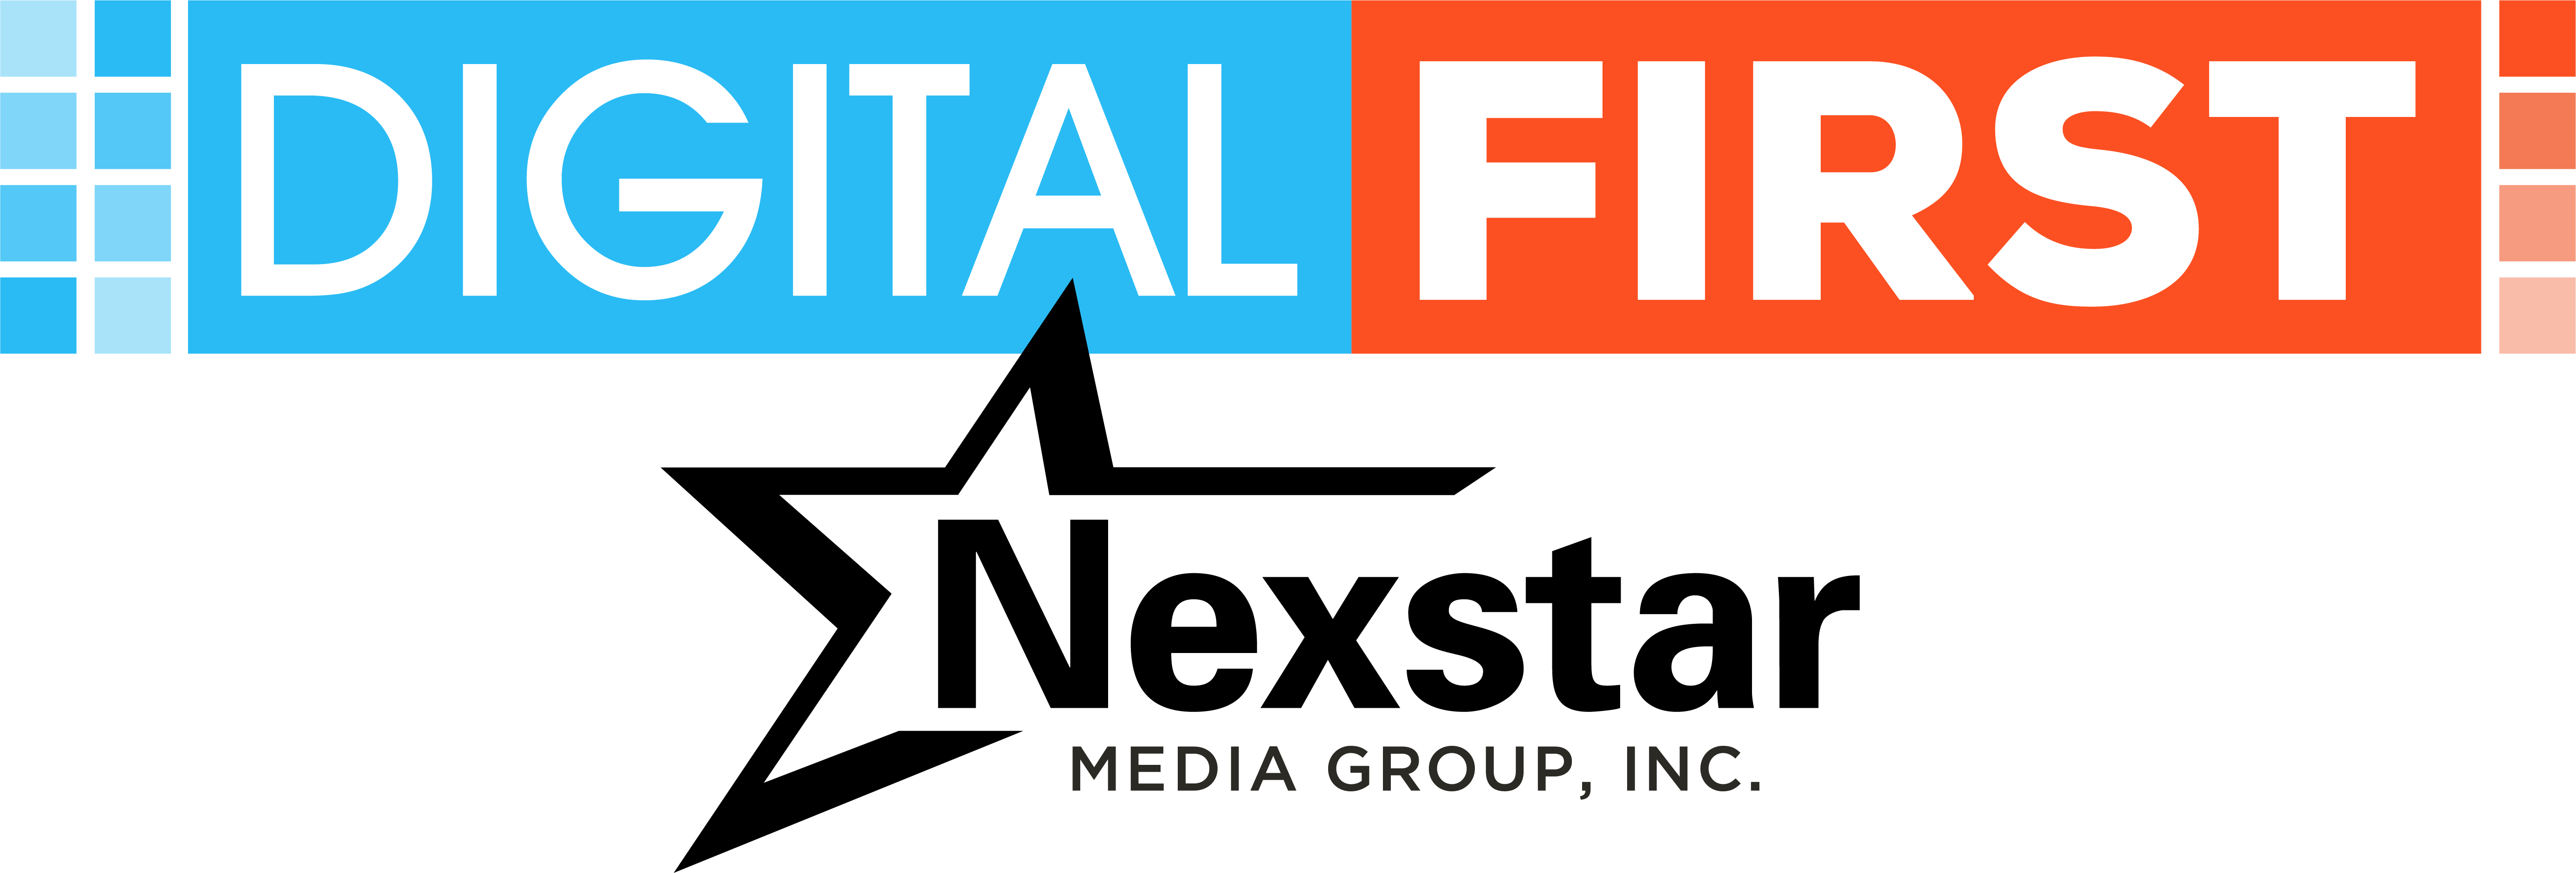 Digital First logo colors-2